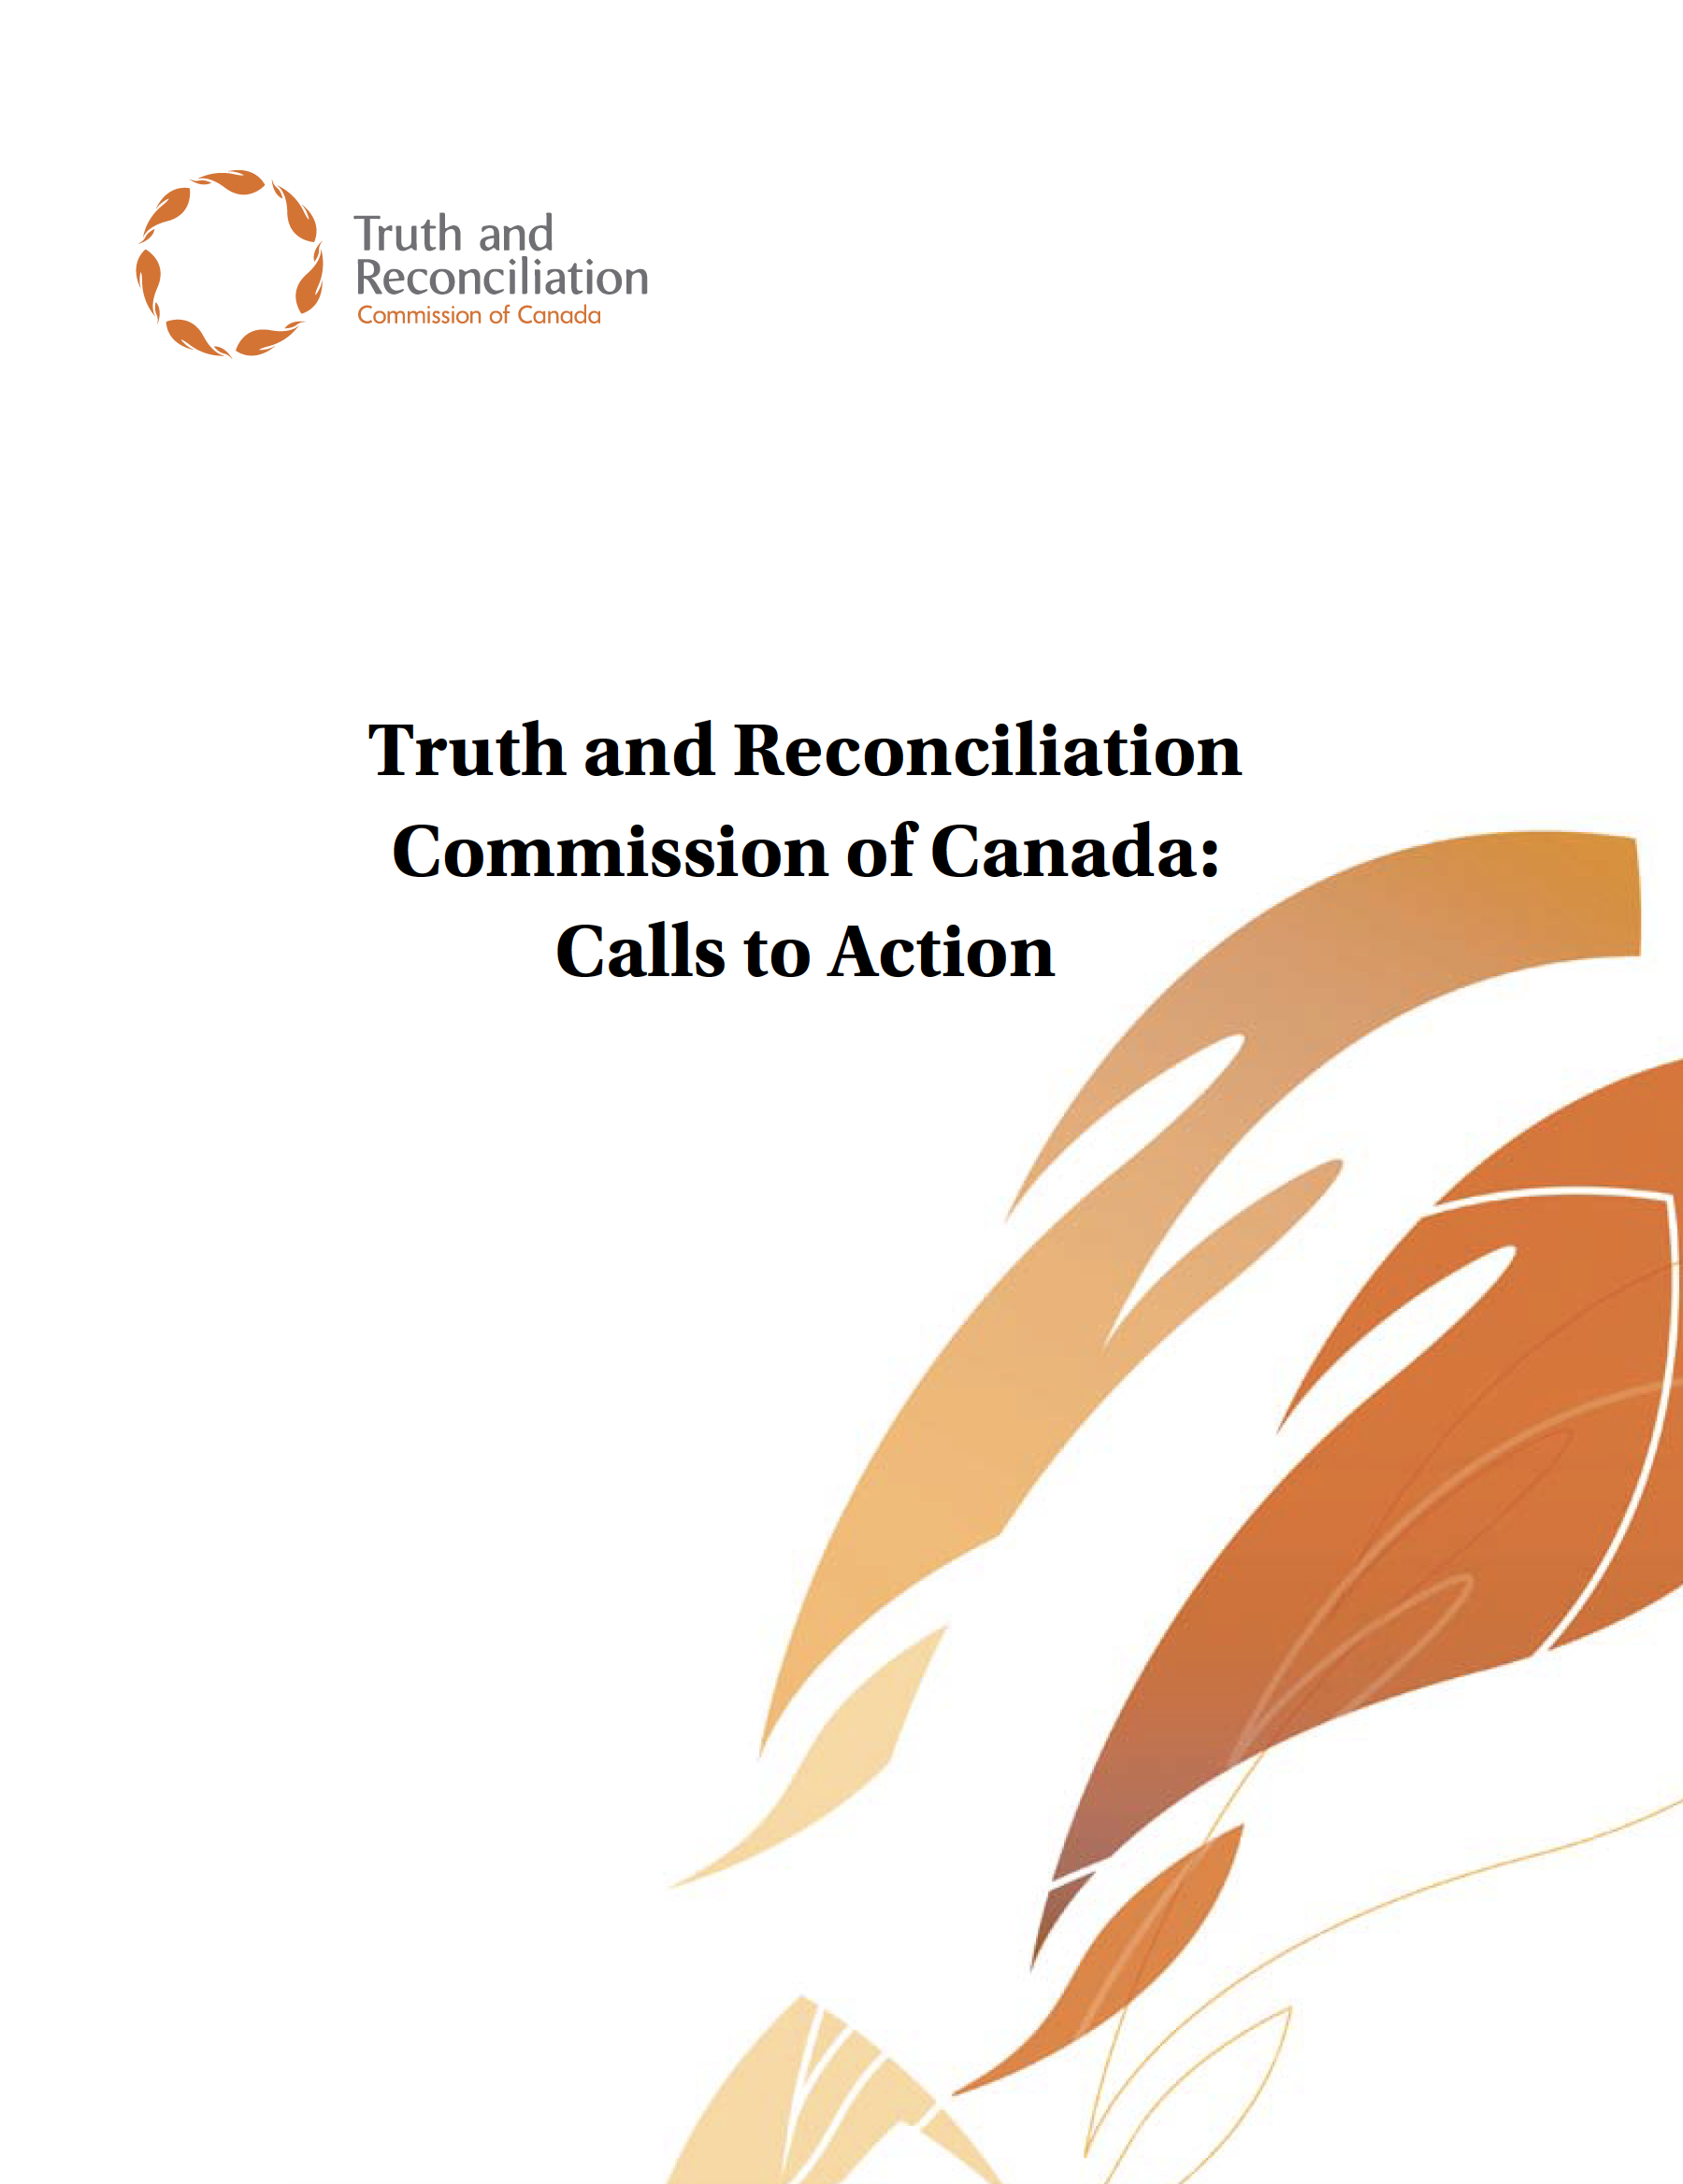 Truth and Reconciliation Commission of Canada: Calls to Action